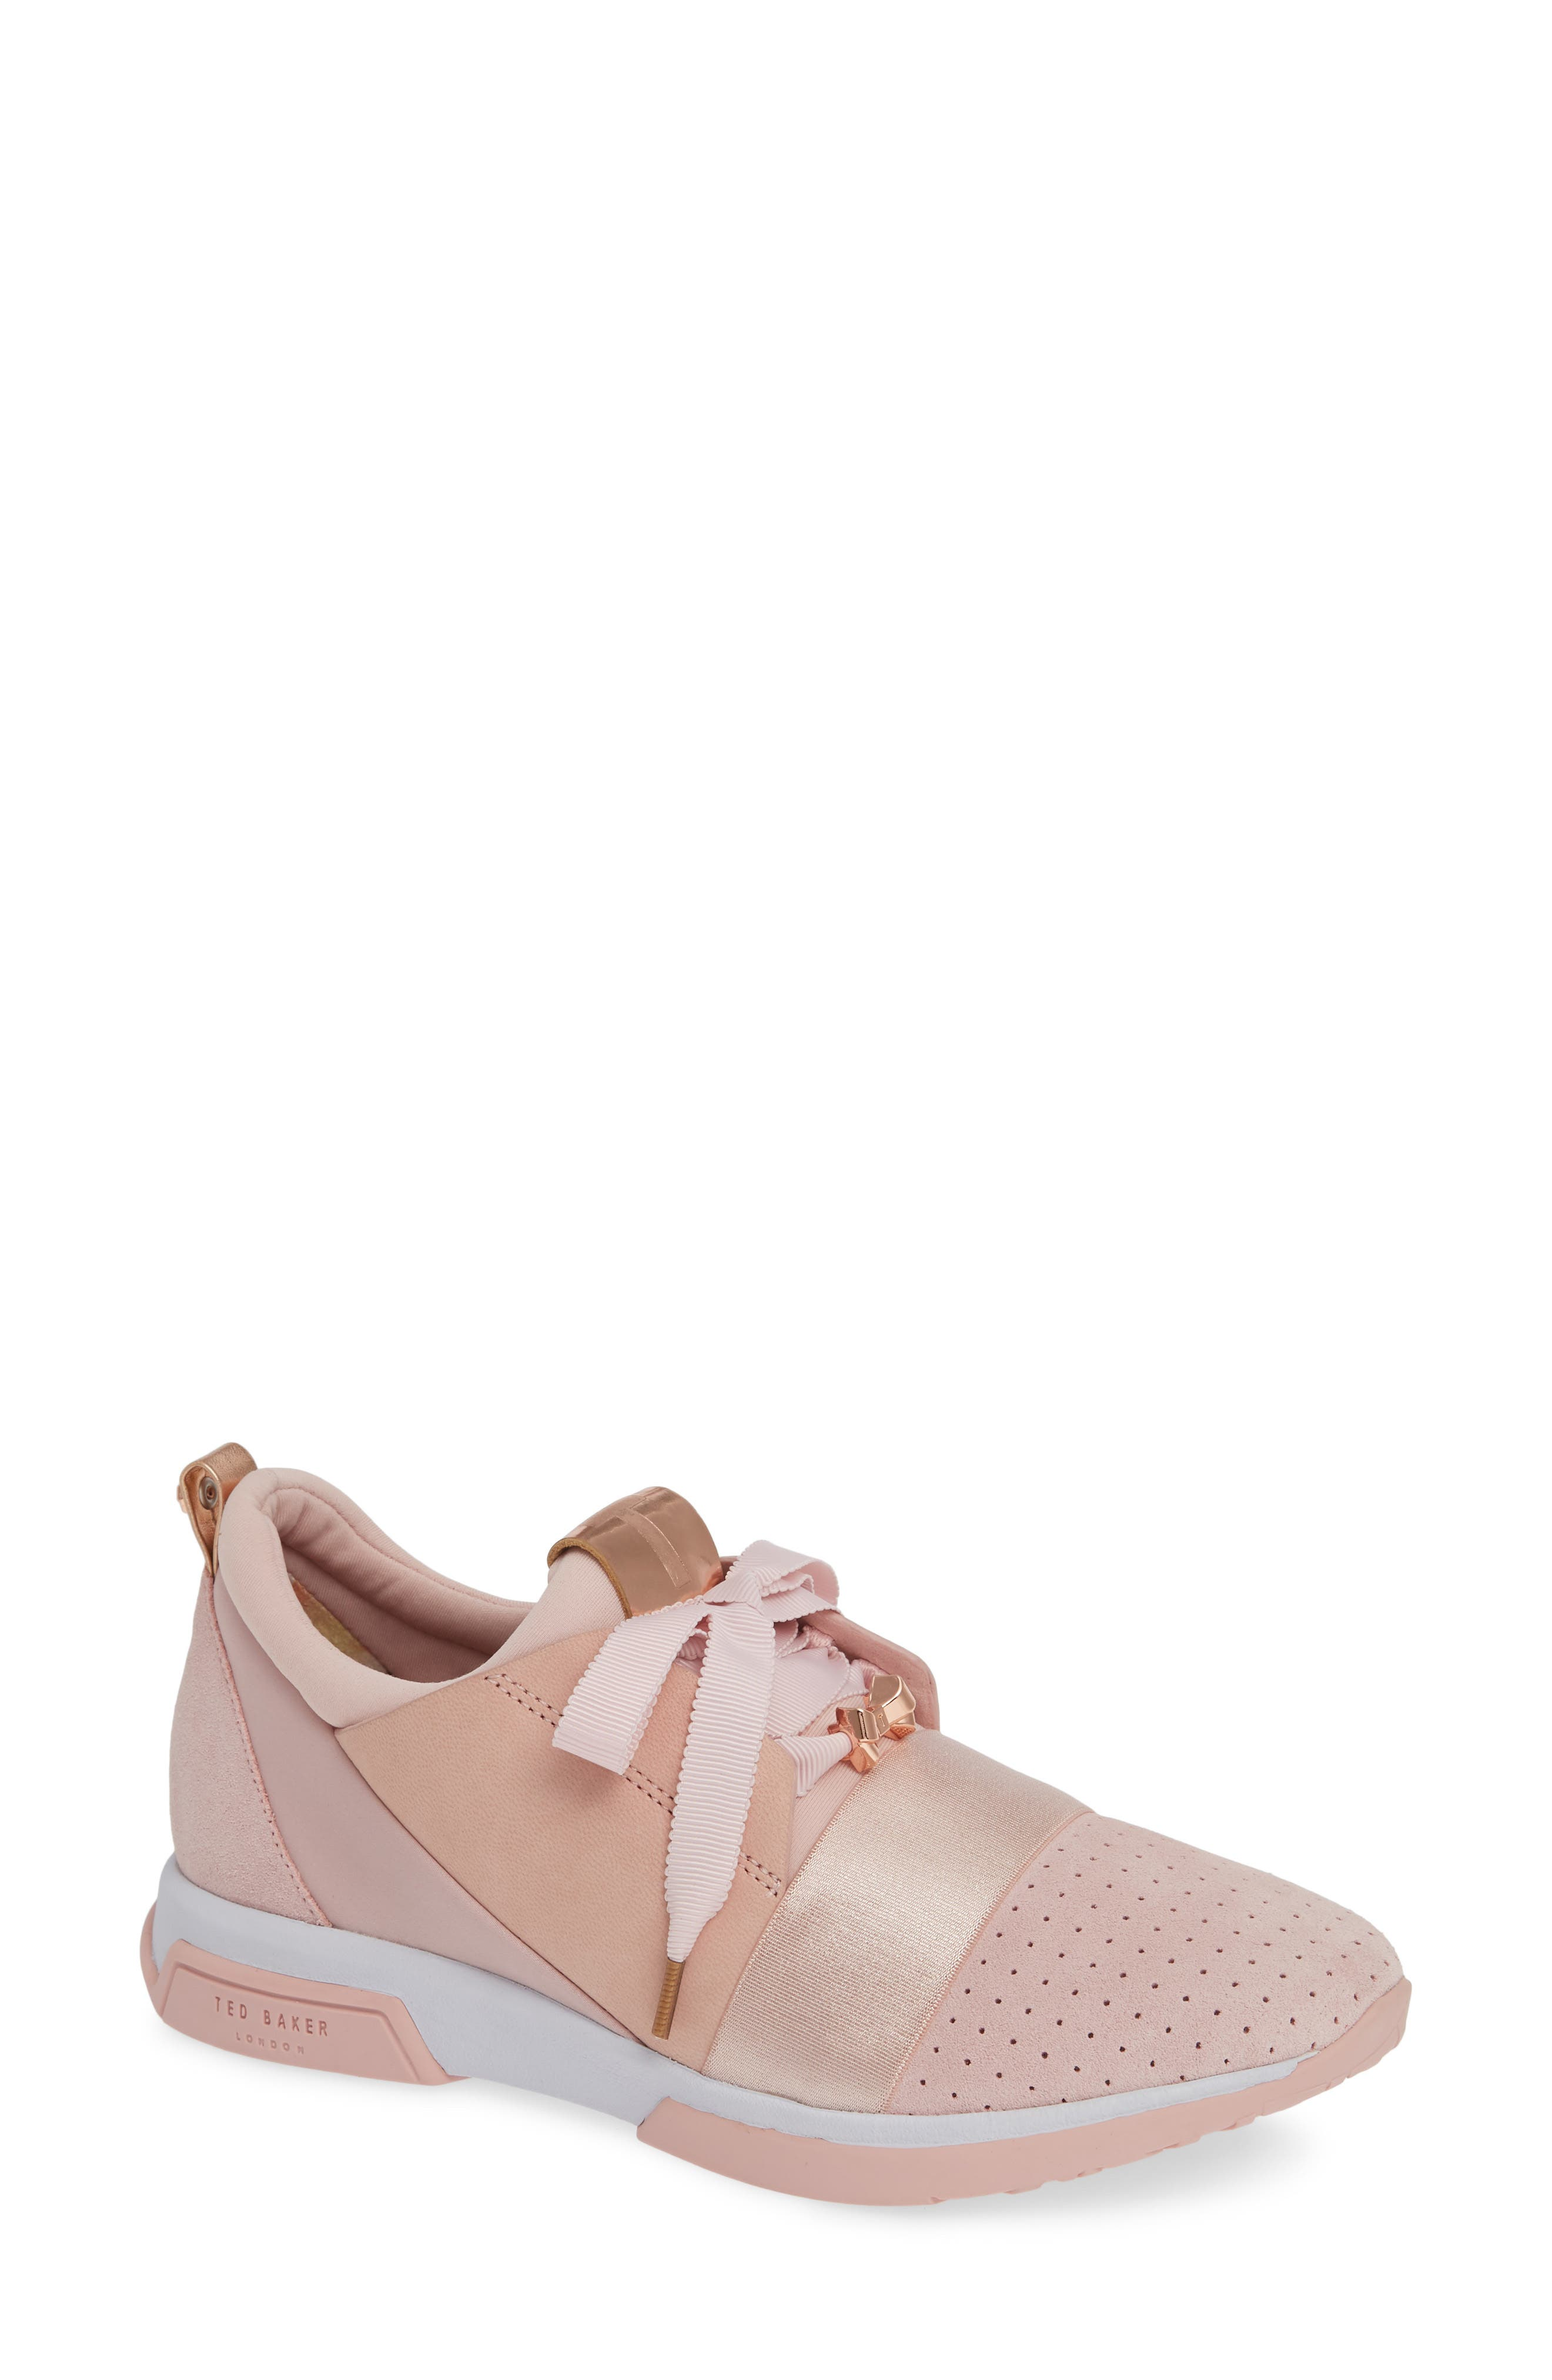 Damens's Ted Sneakers Baker London Sneakers Ted & Running Schuhes   Nordstrom a78a51